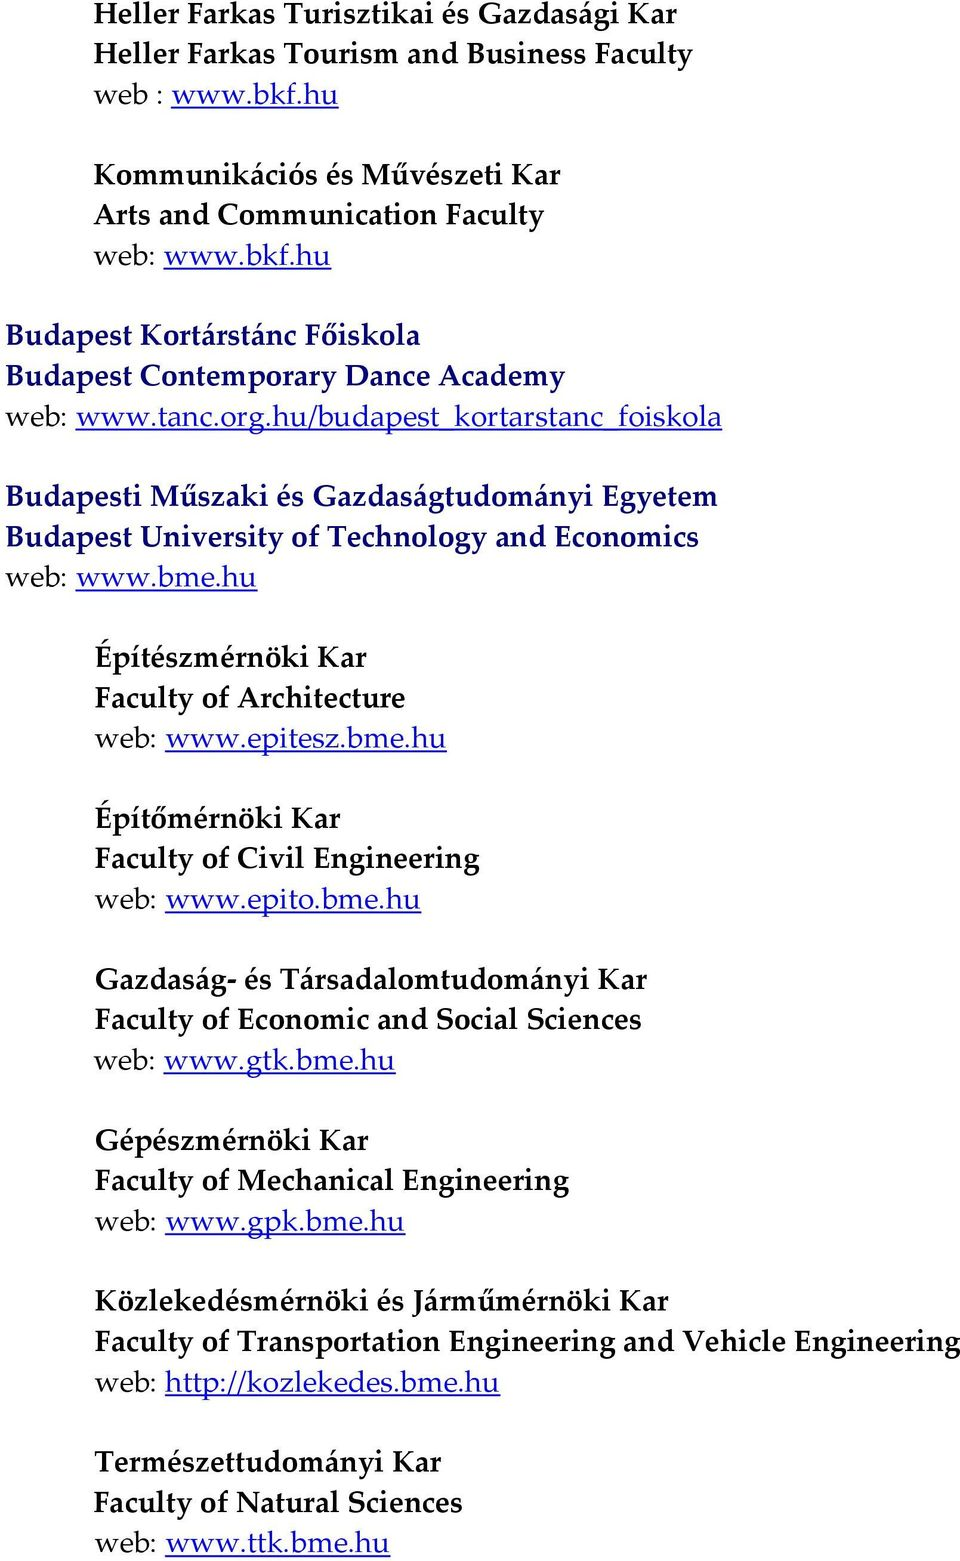 hu Építészmérnöki Kar Faculty of Architecture web: www.epitesz.bme.hu Építőmérnöki Kar Faculty of Civil Engineering web: www.epito.bme.hu Gazdaság és Társadalomtudományi Kar Faculty of Economic and Social Sciences web: www.